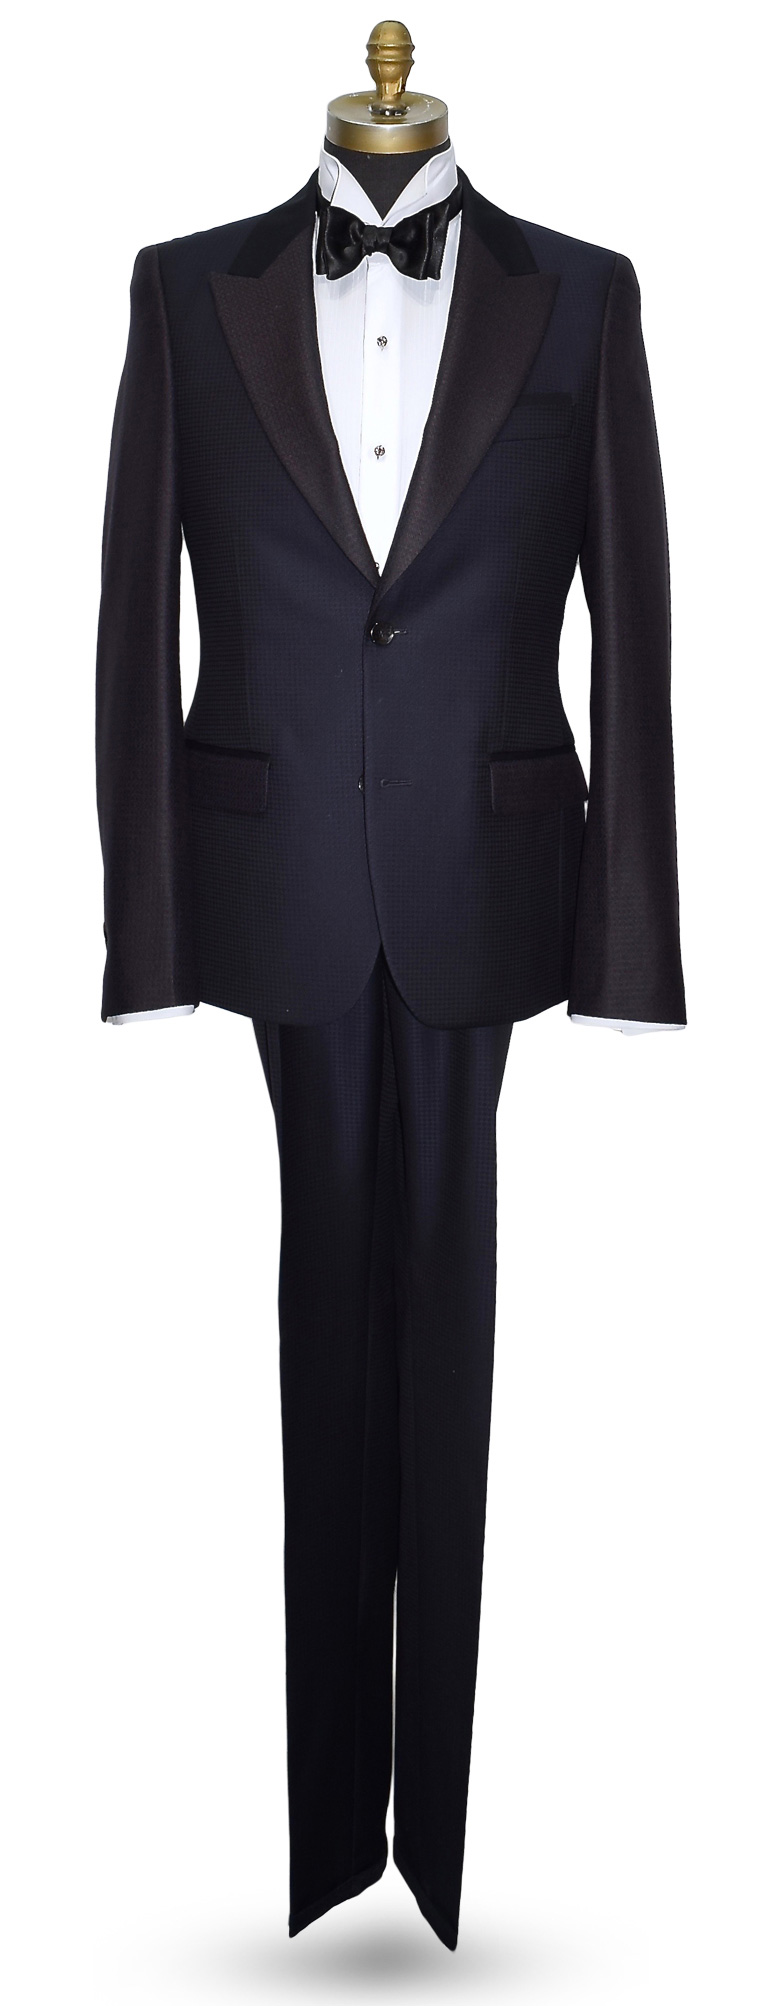 Blue Peak Lapel Tuxedo Ultra Slim Fit Coat and Pants Set with Contrasting Fabric